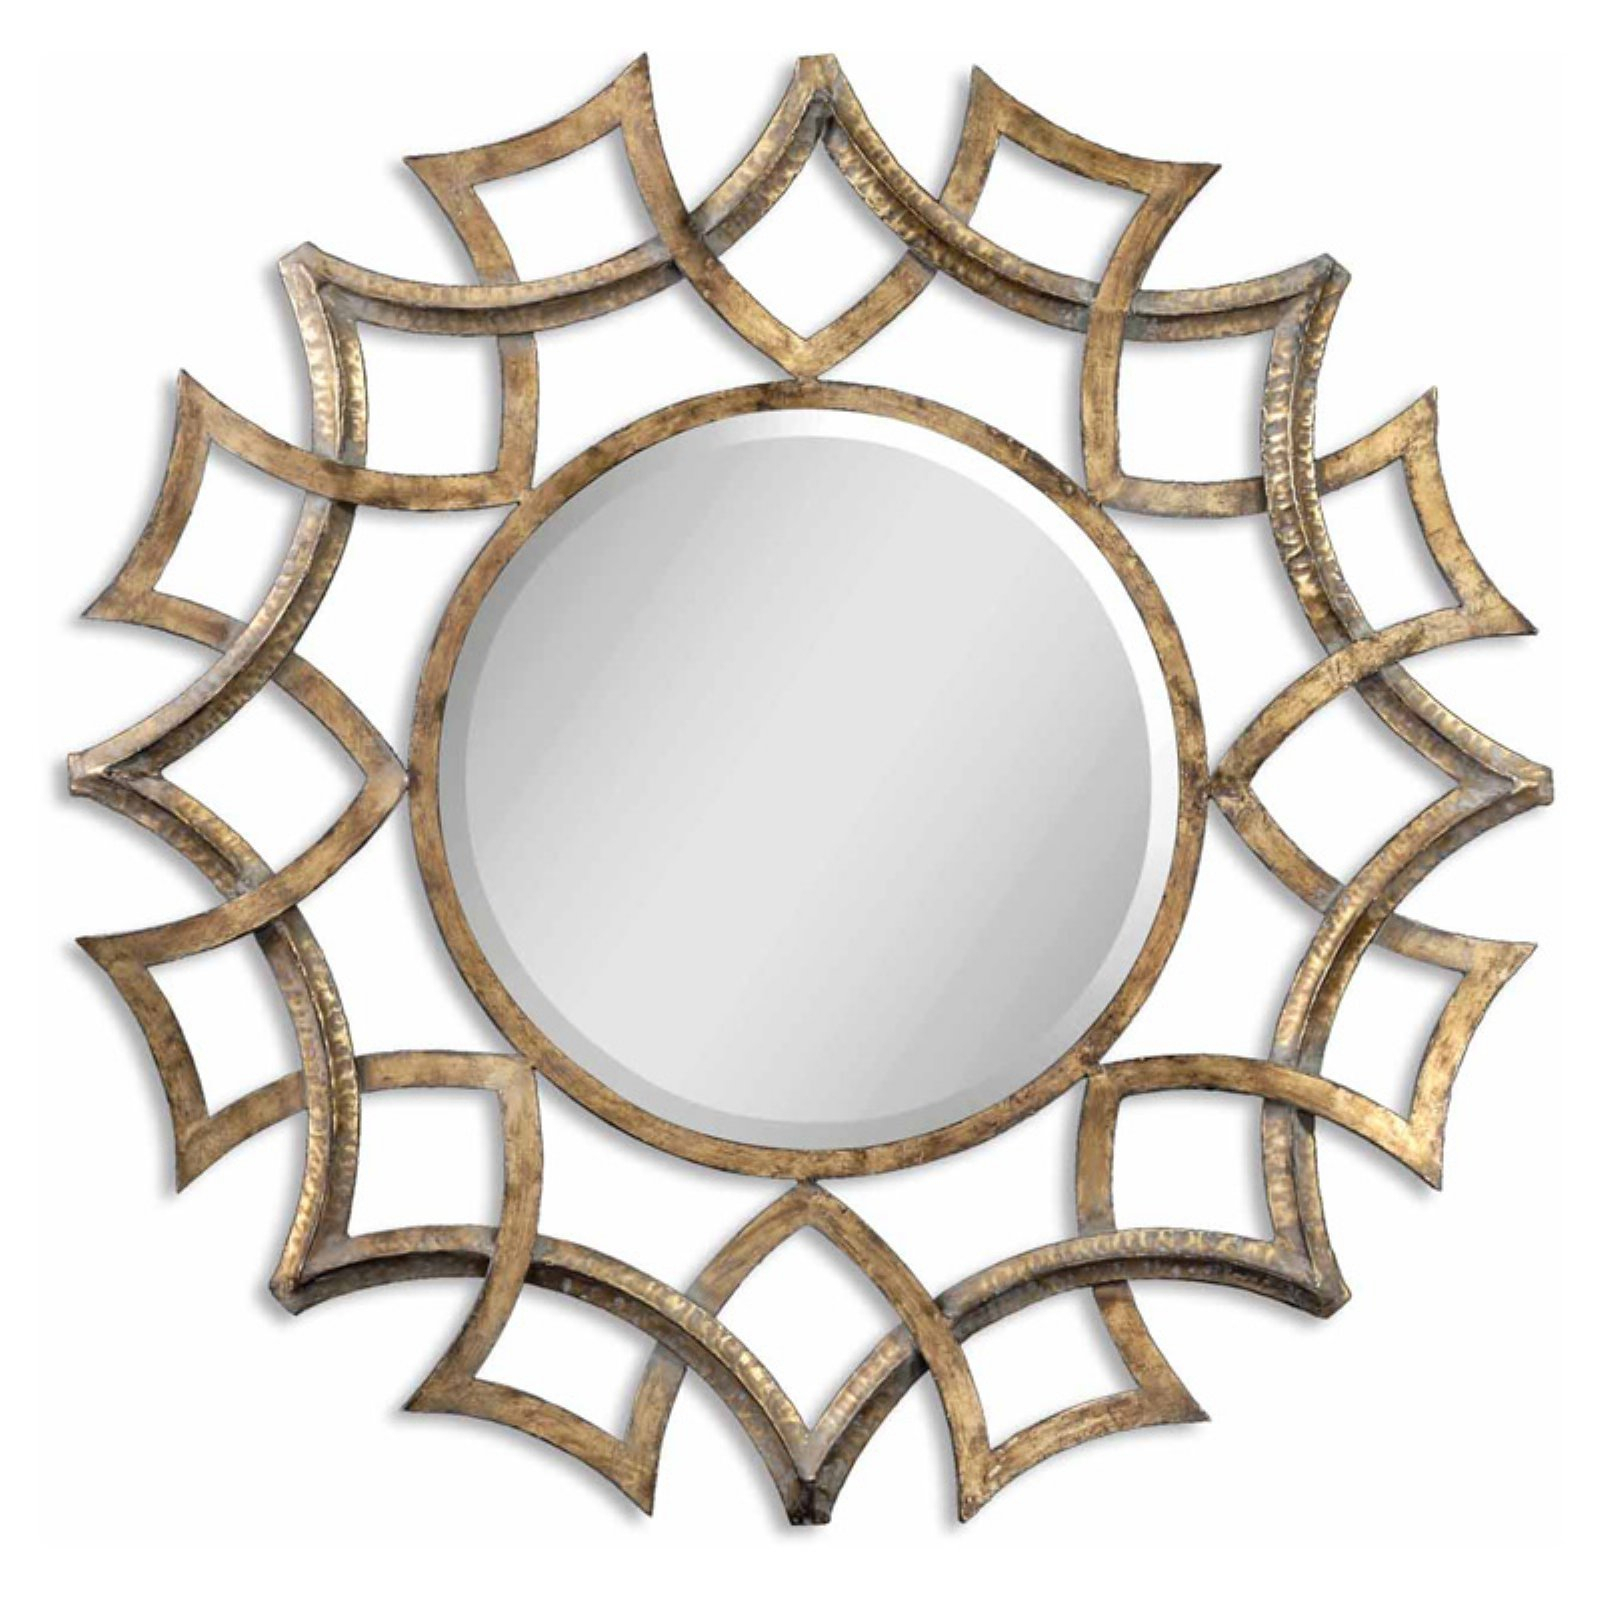 Uttermost Demarco Antiqued Gold Metal Decorative Wall Mirror Throughout Brylee Traditional Sunburst Mirrors (View 6 of 20)